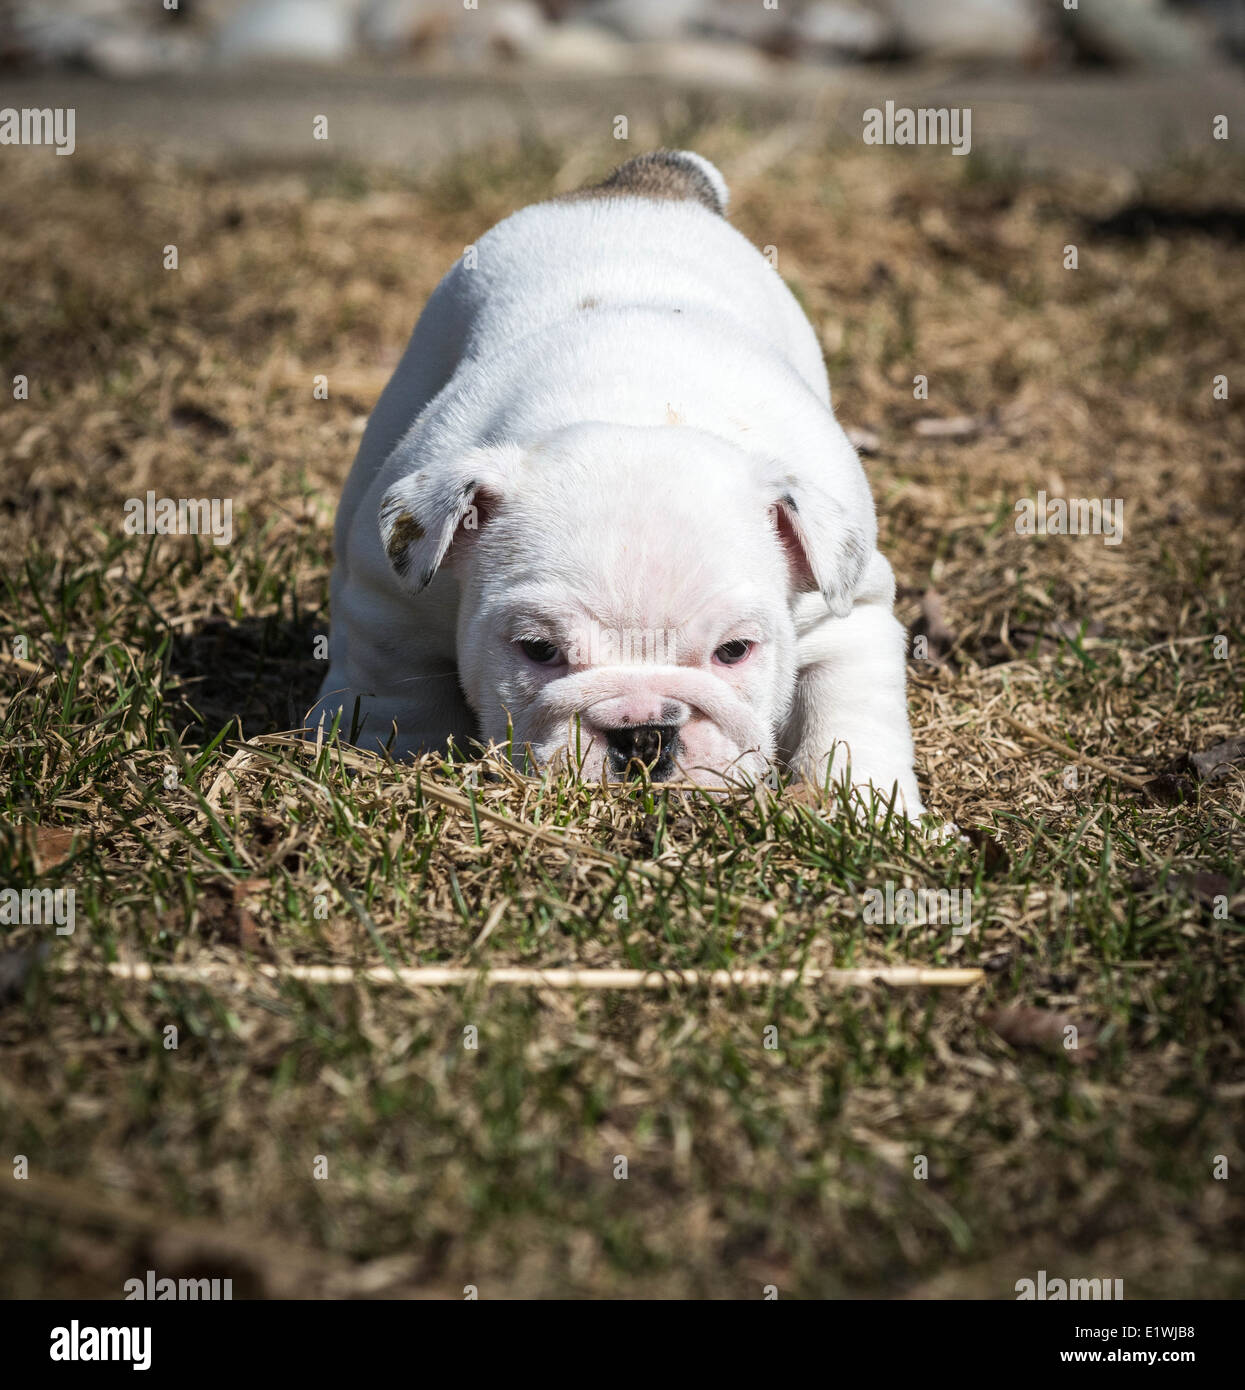 english bulldog puppy playing outside in the grass - Stock Image